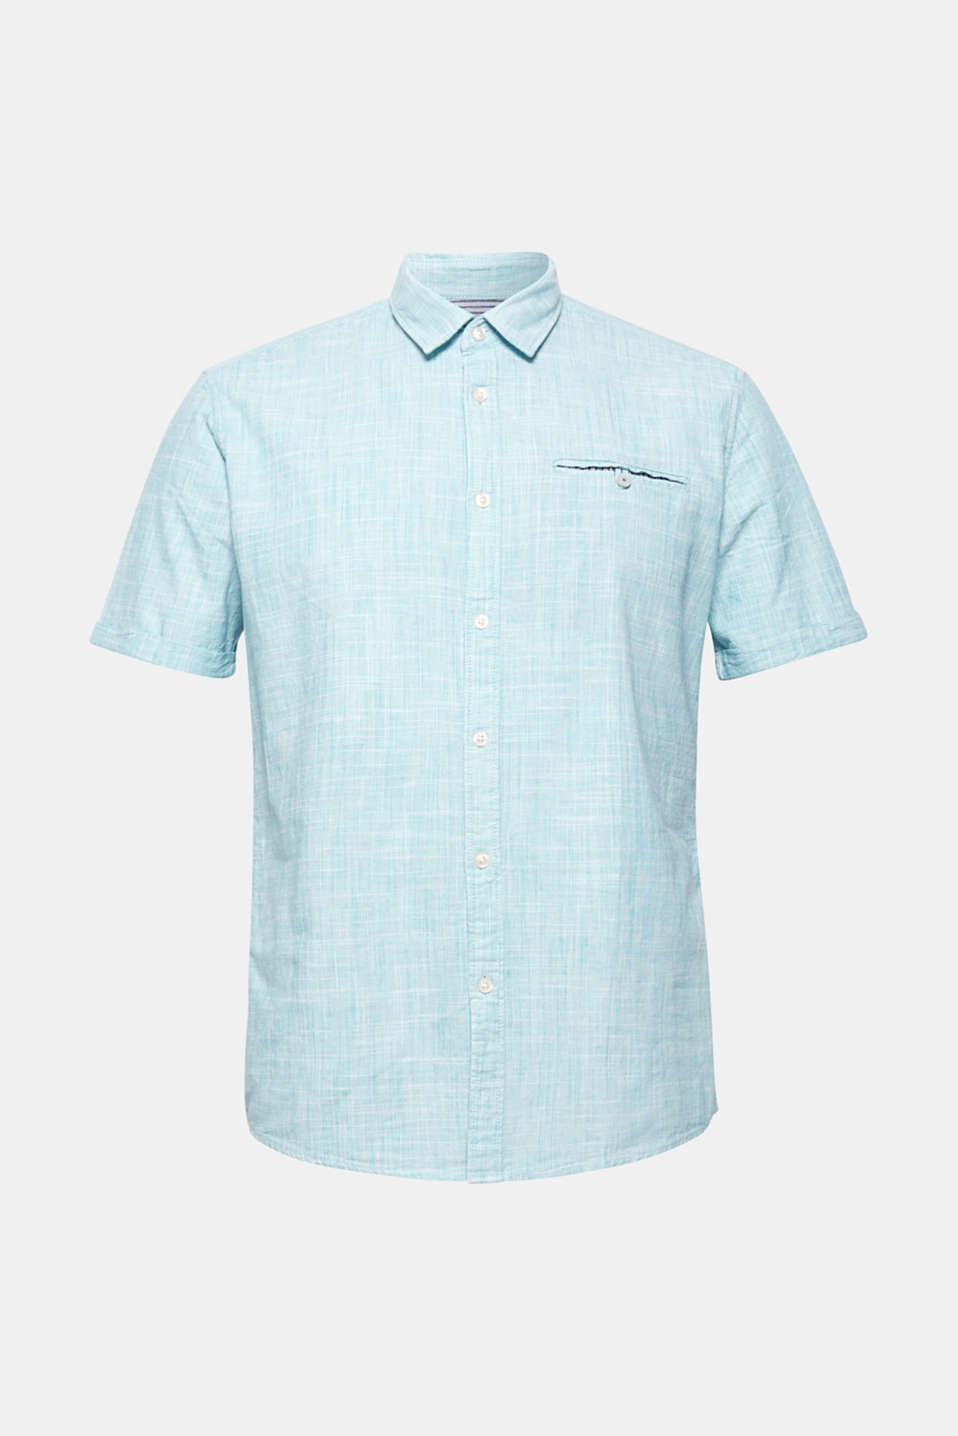 Shirts woven Slim fit, LIGHT AQUA GREEN, detail image number 6